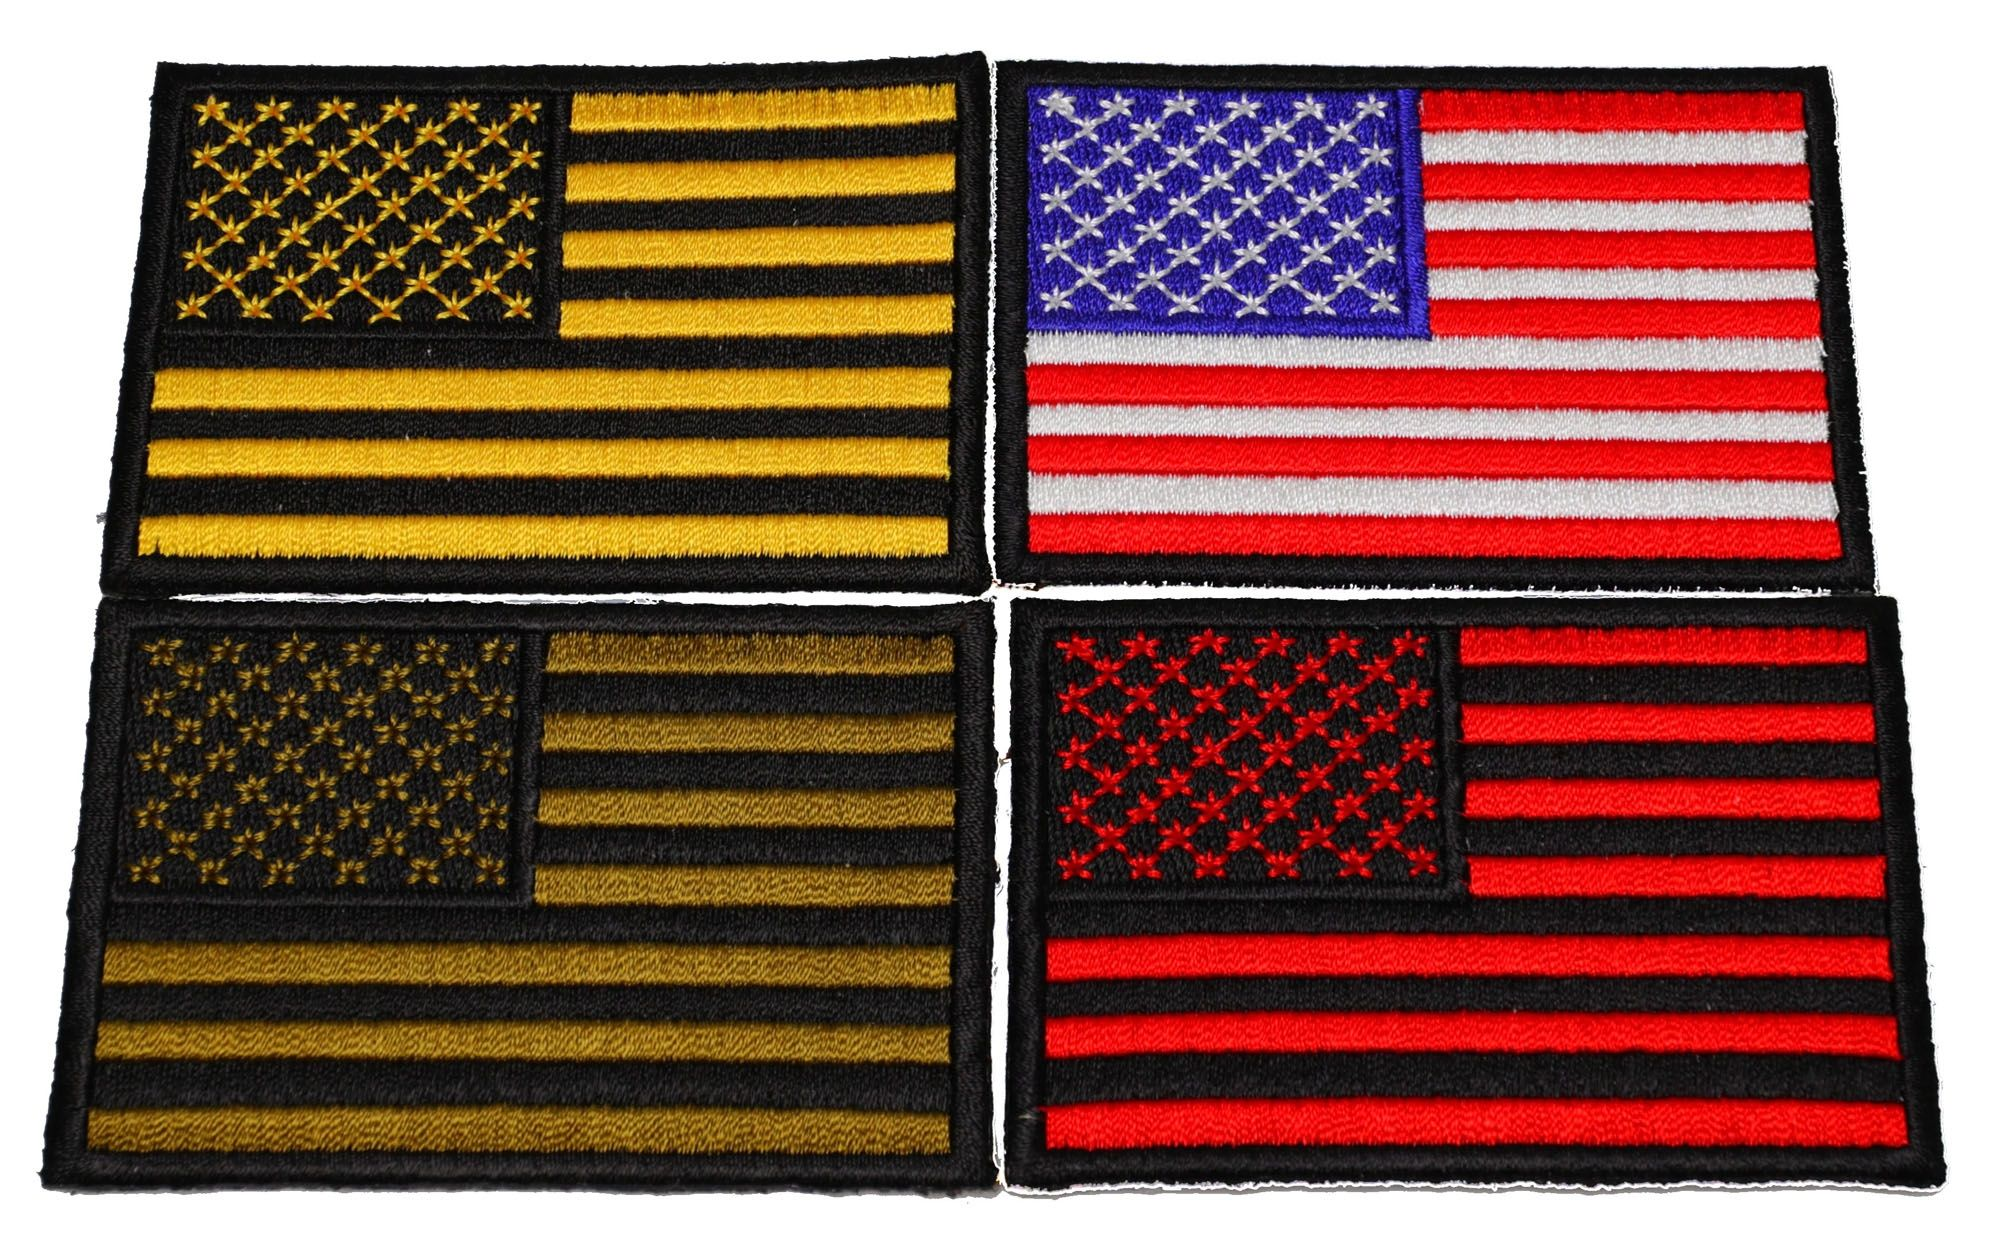 Set Of 4 Black Bordered Us Flag Patches In Different Colors Thecheapplace Flag Patches Embroidered Patches Different Colors